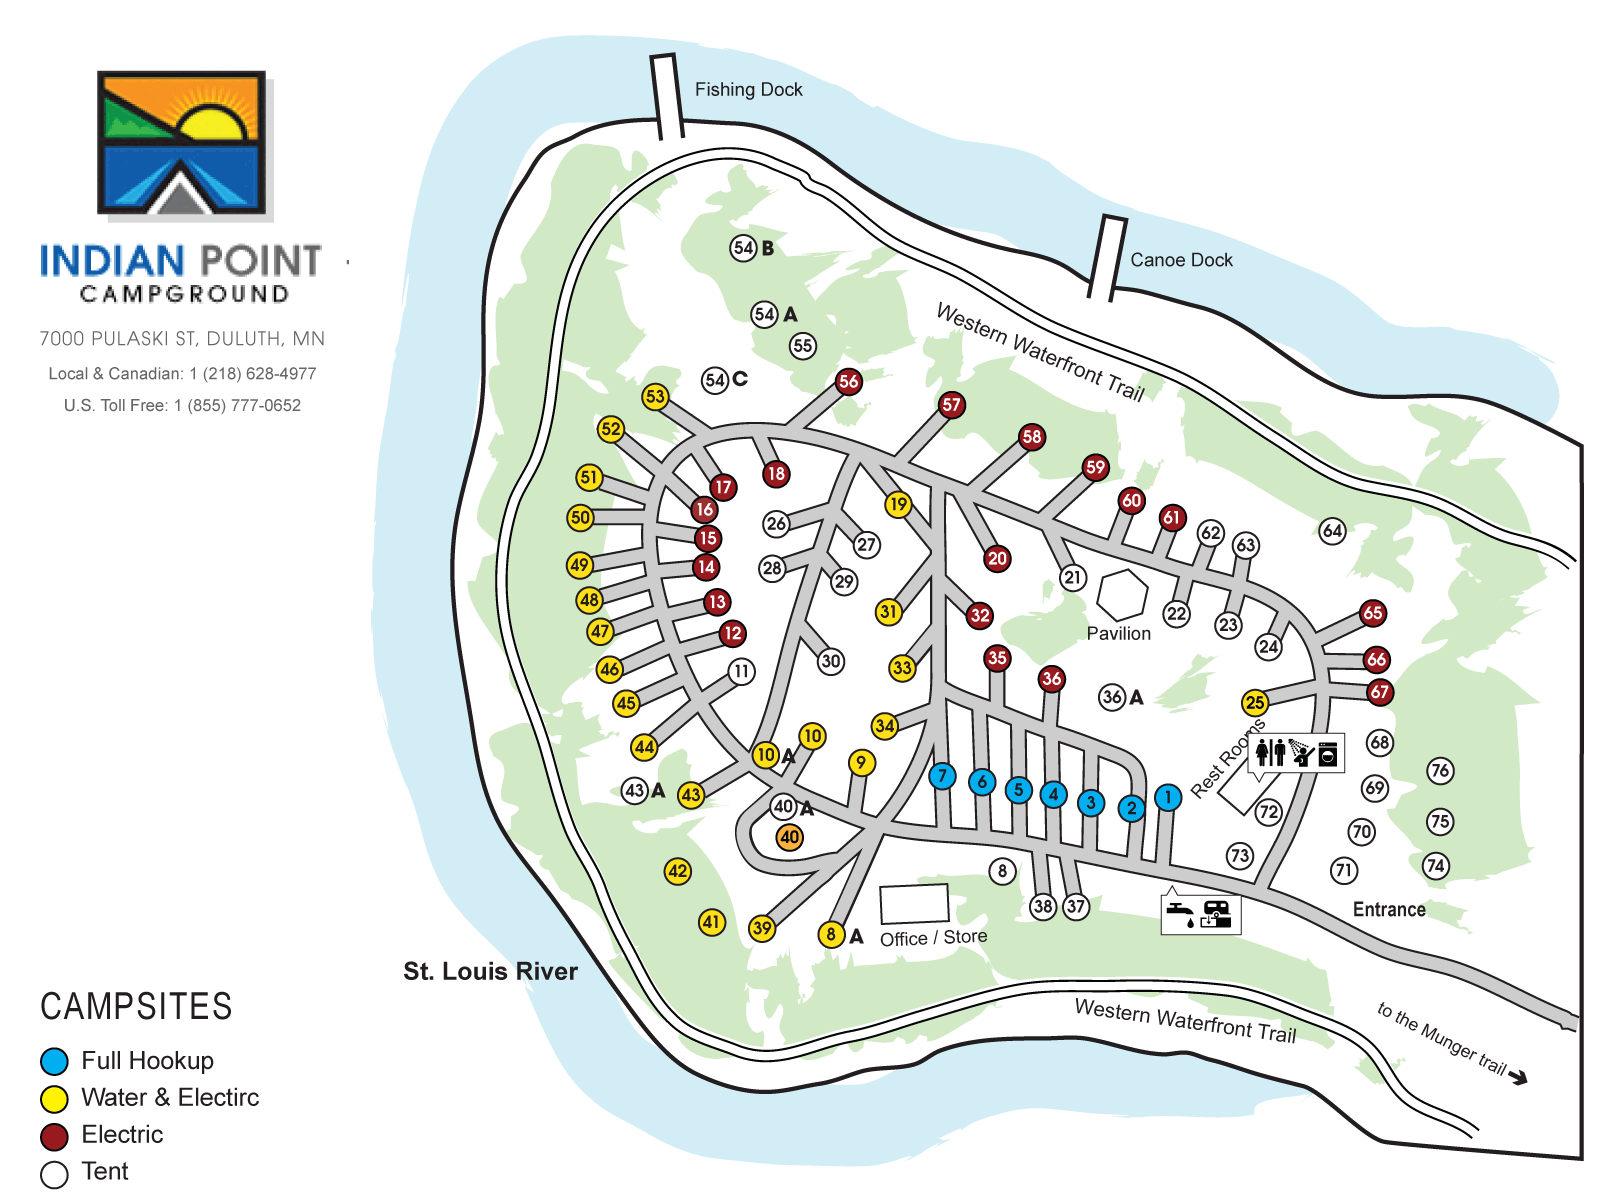 Indian Point Campground Map, Dulut, MN